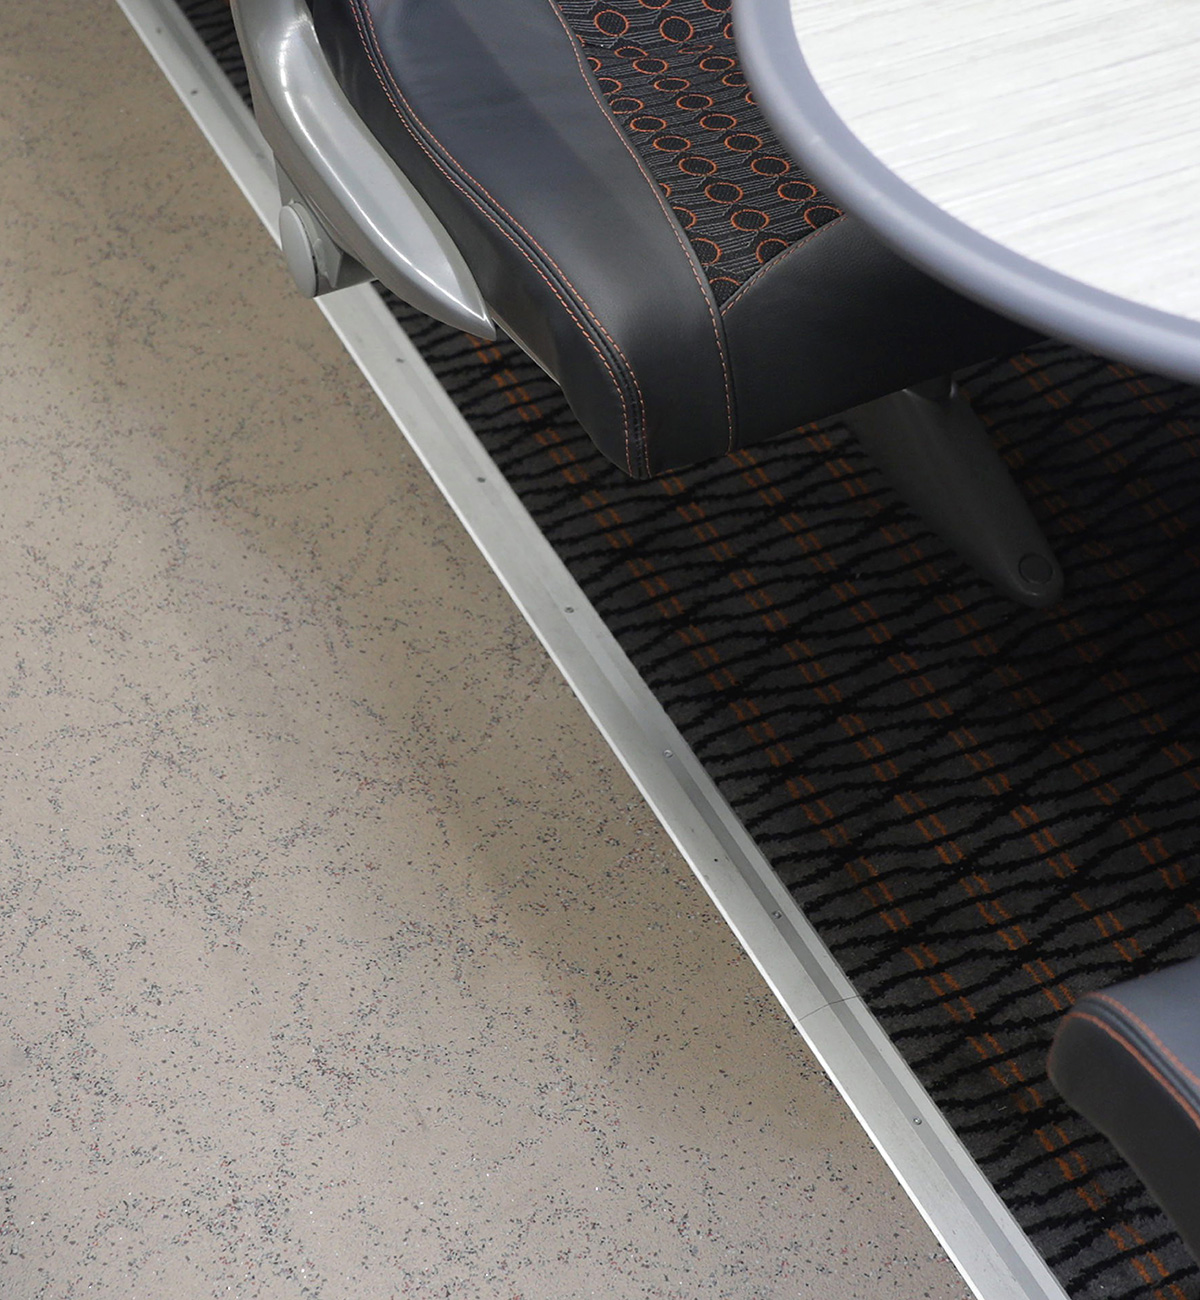 Altro custom design rail flooring on a Grand Central intercity train in standard class